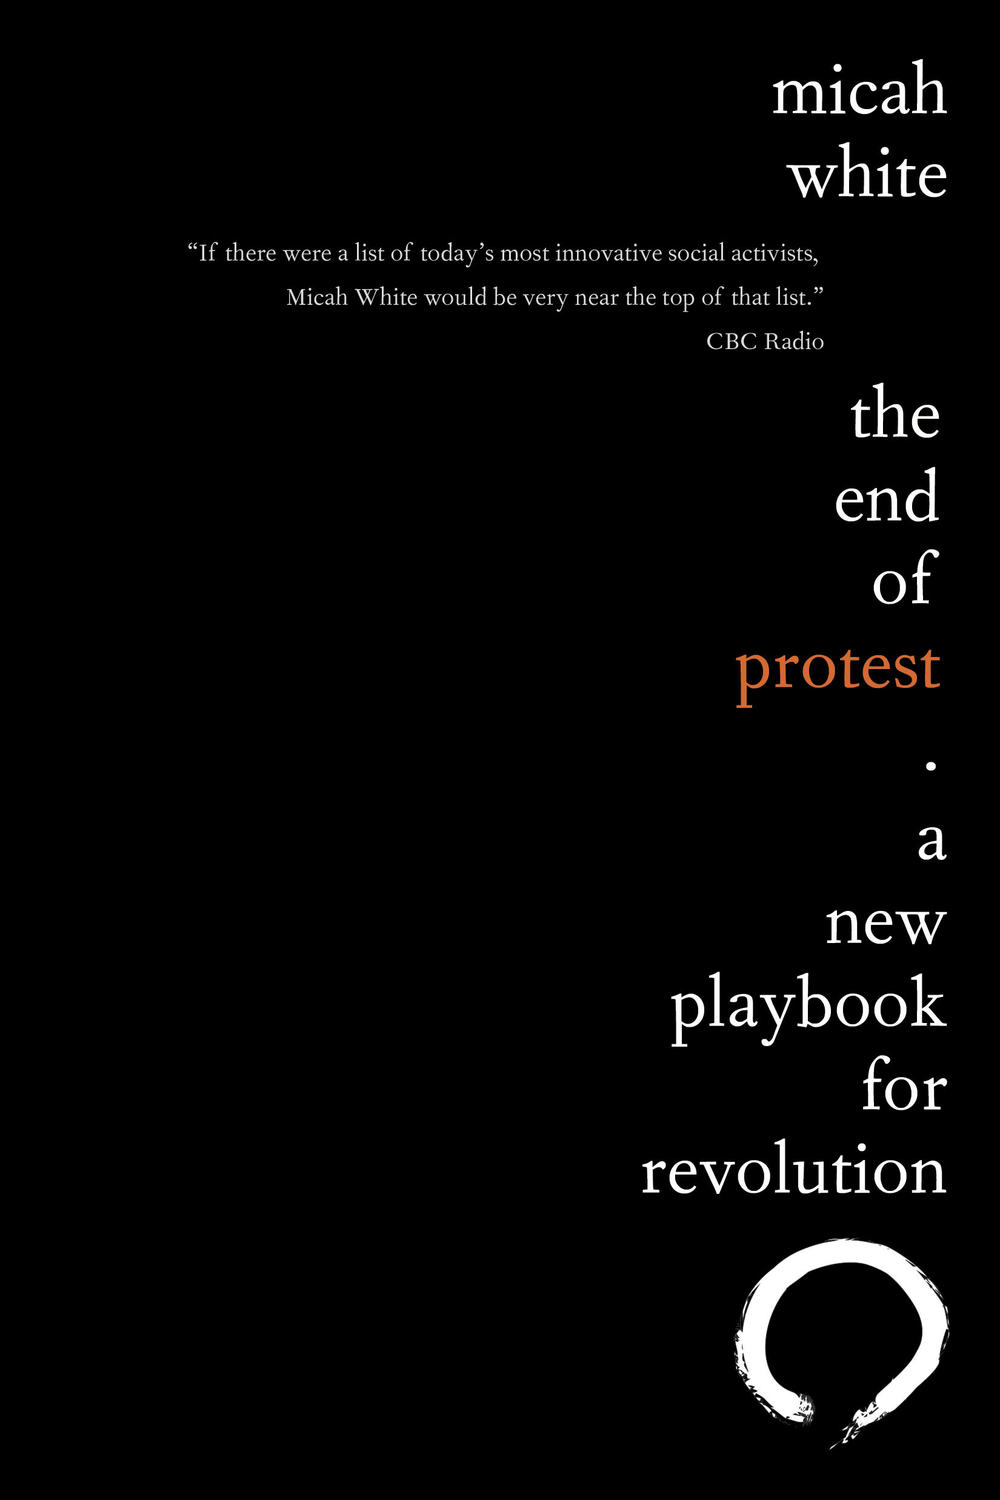 THE END OF PROTEST: A NEW PLAYBOOK FOR REVOLUTION by Micah White will be published on March 15, 2016 by Penguin Random House of Canada under the Knopf Canada imprint. This is a preview of the cover.